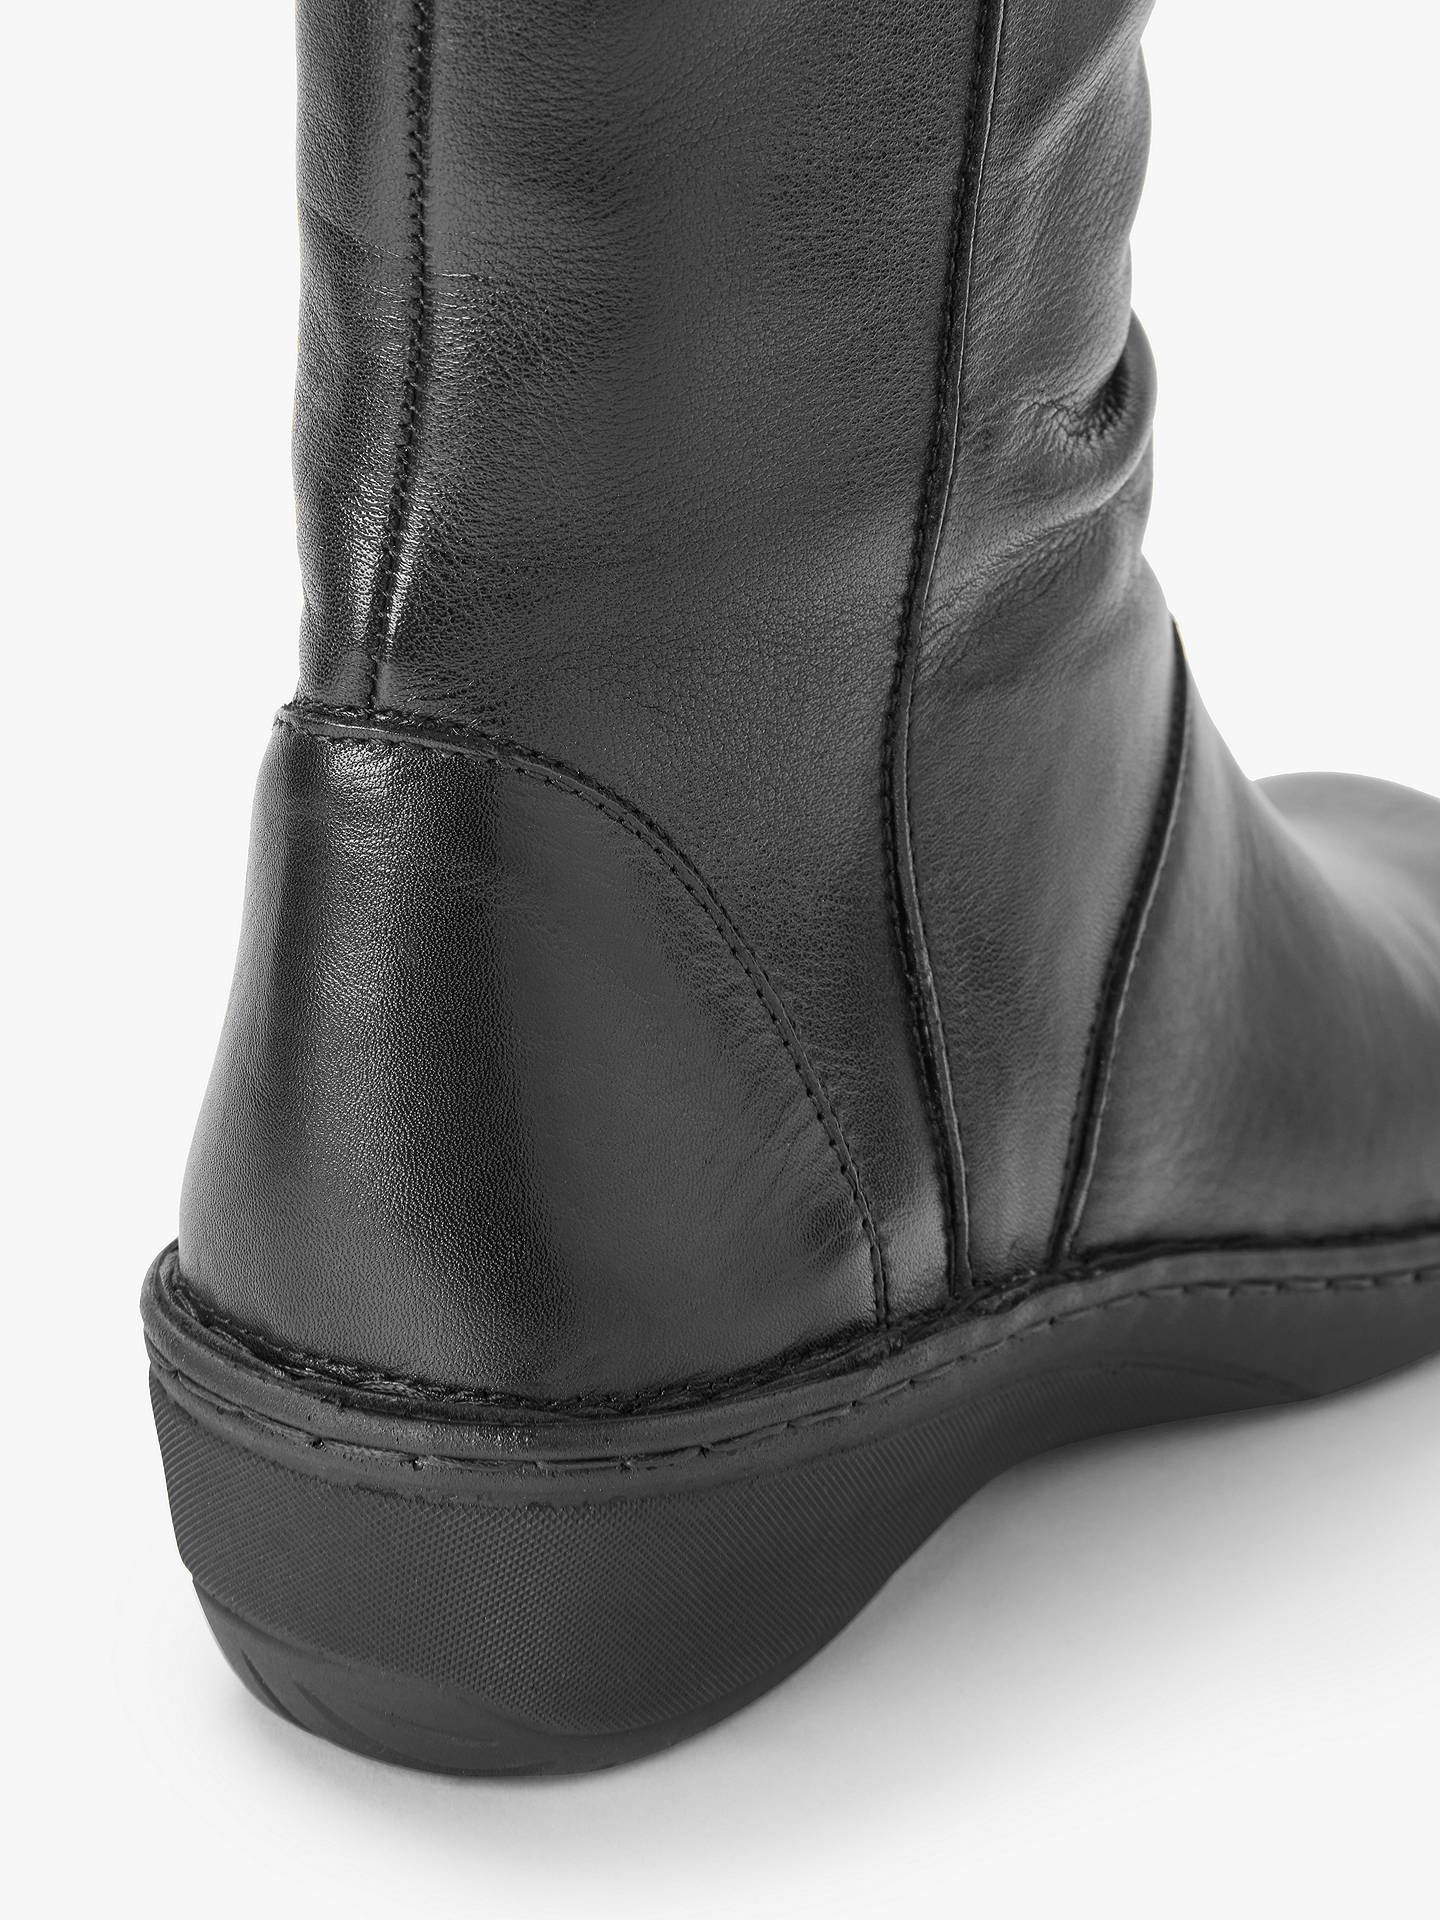 BuyJohn Lewis & Partners Designed for Comfort Rook Knee Boots, Black Leather, 6 Online at johnlewis.com